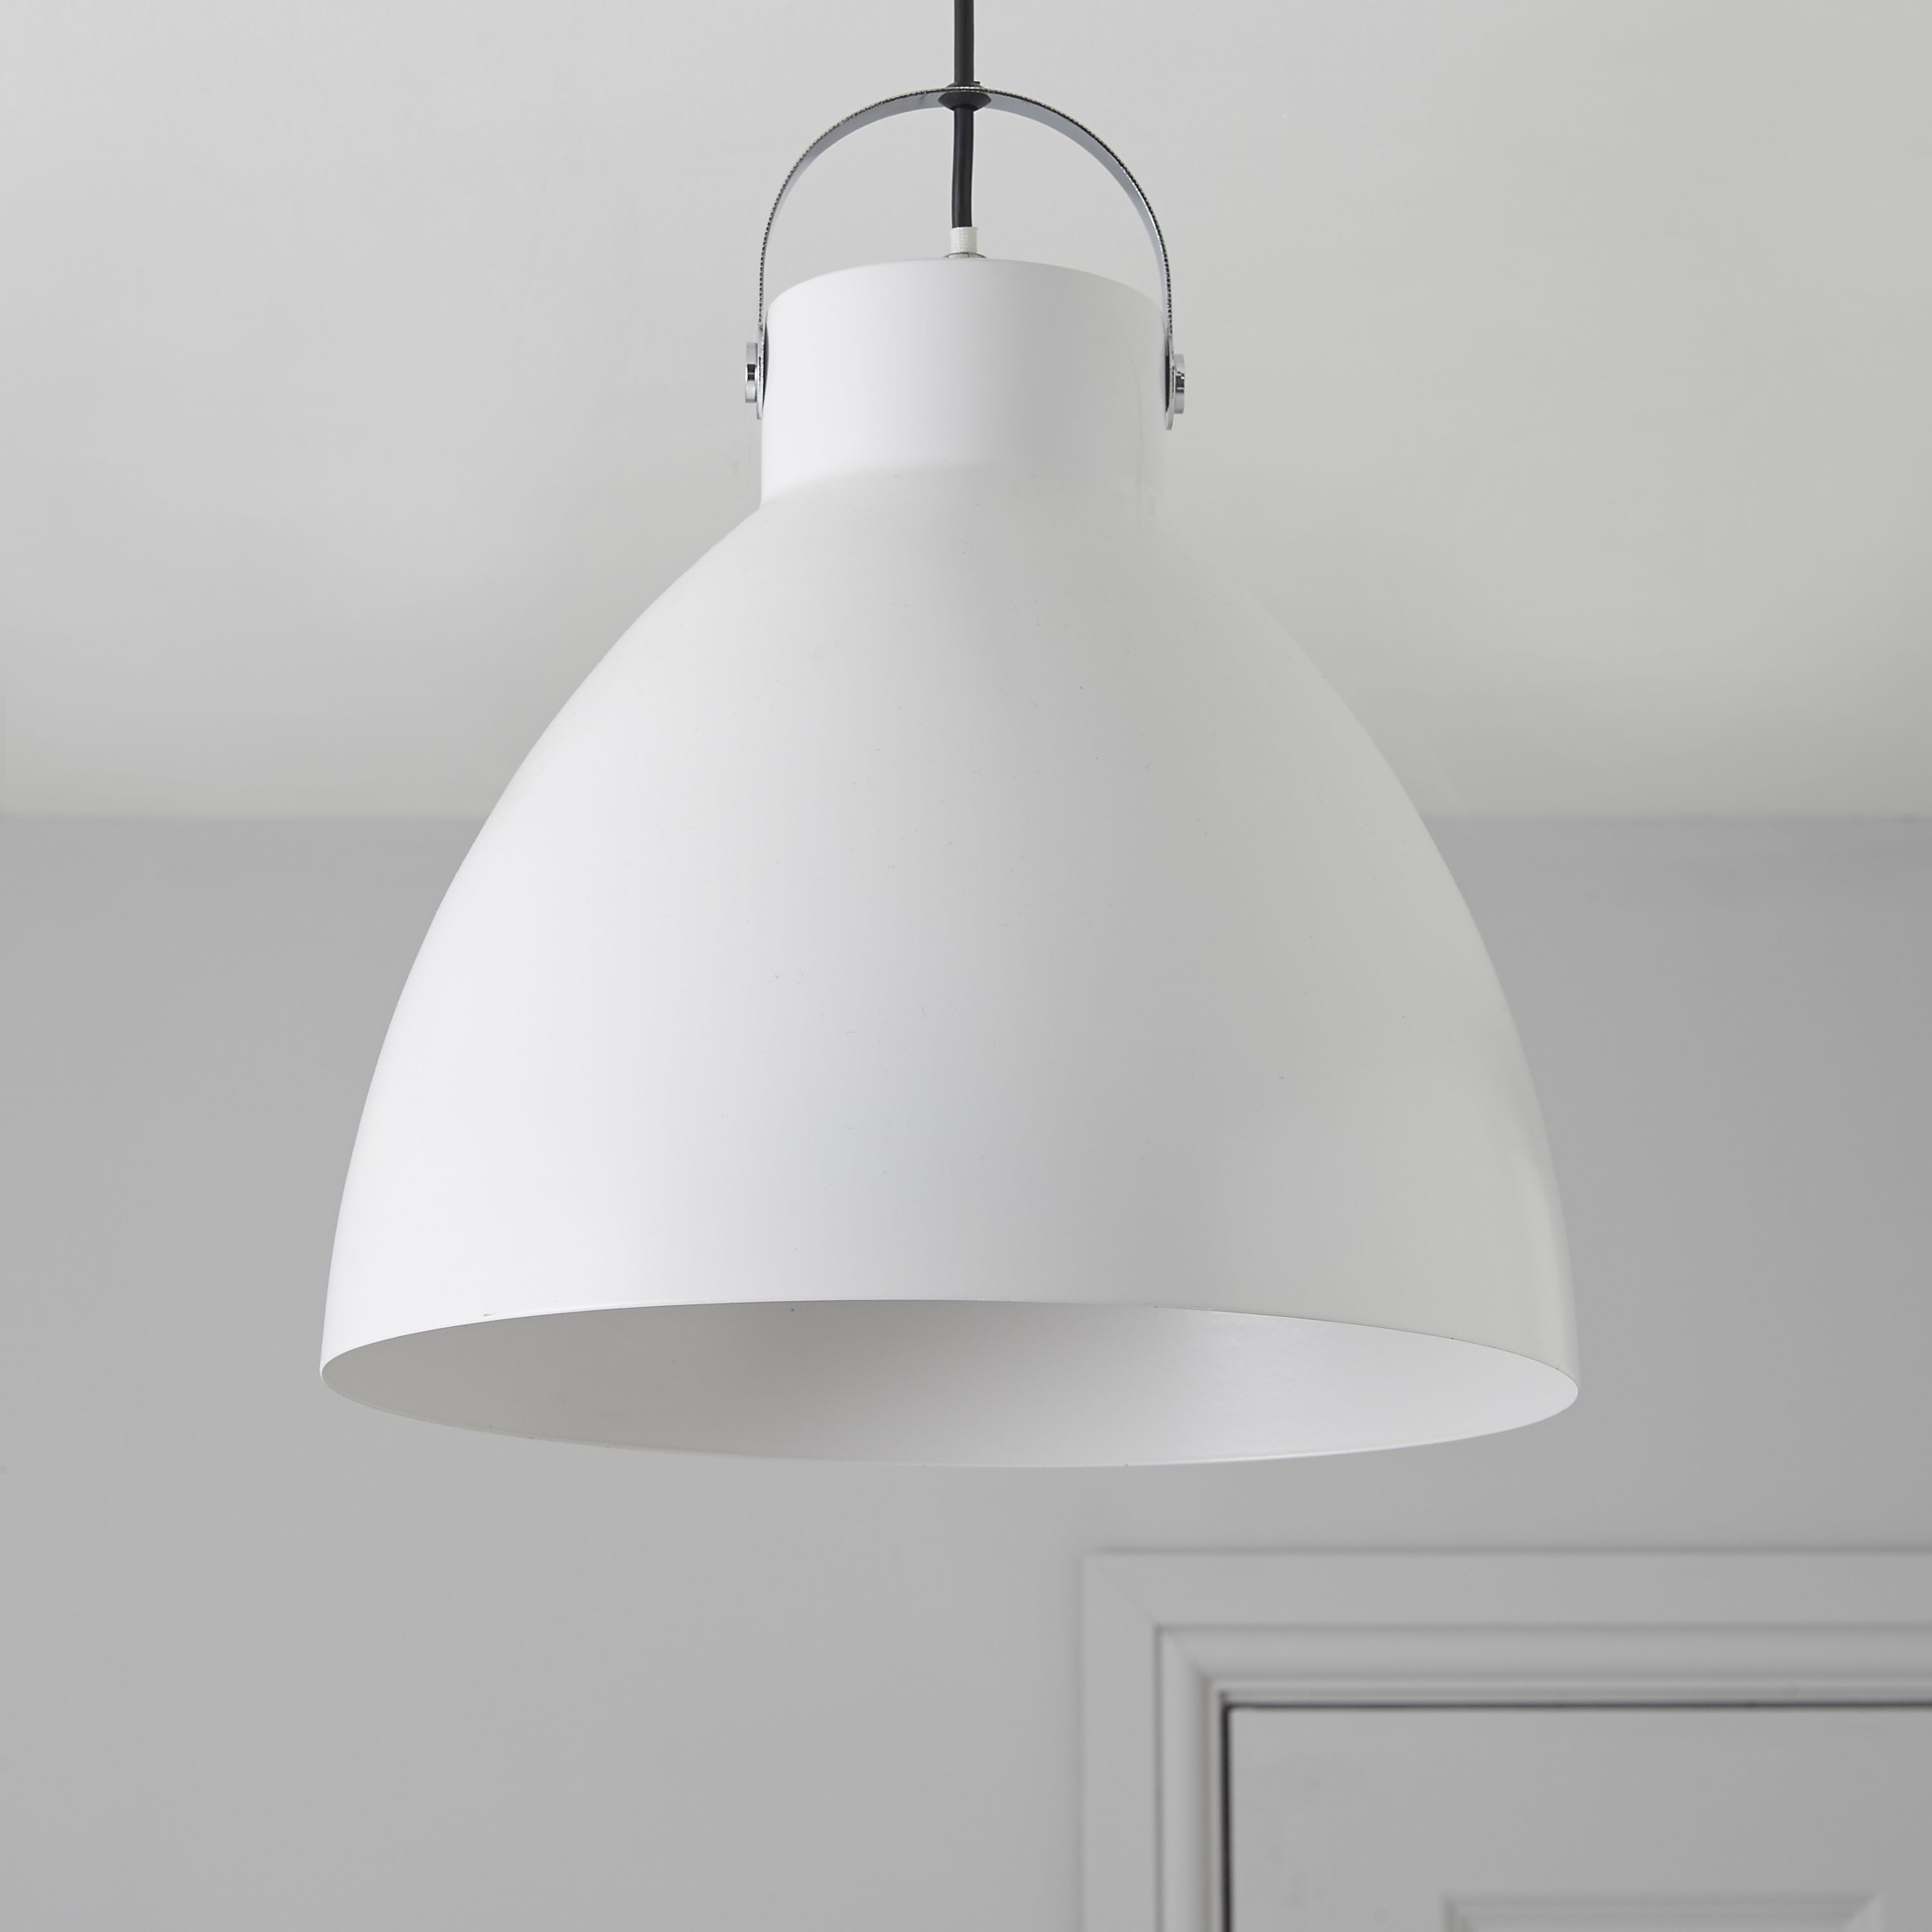 Tibbon White Pendant Ceiling Light